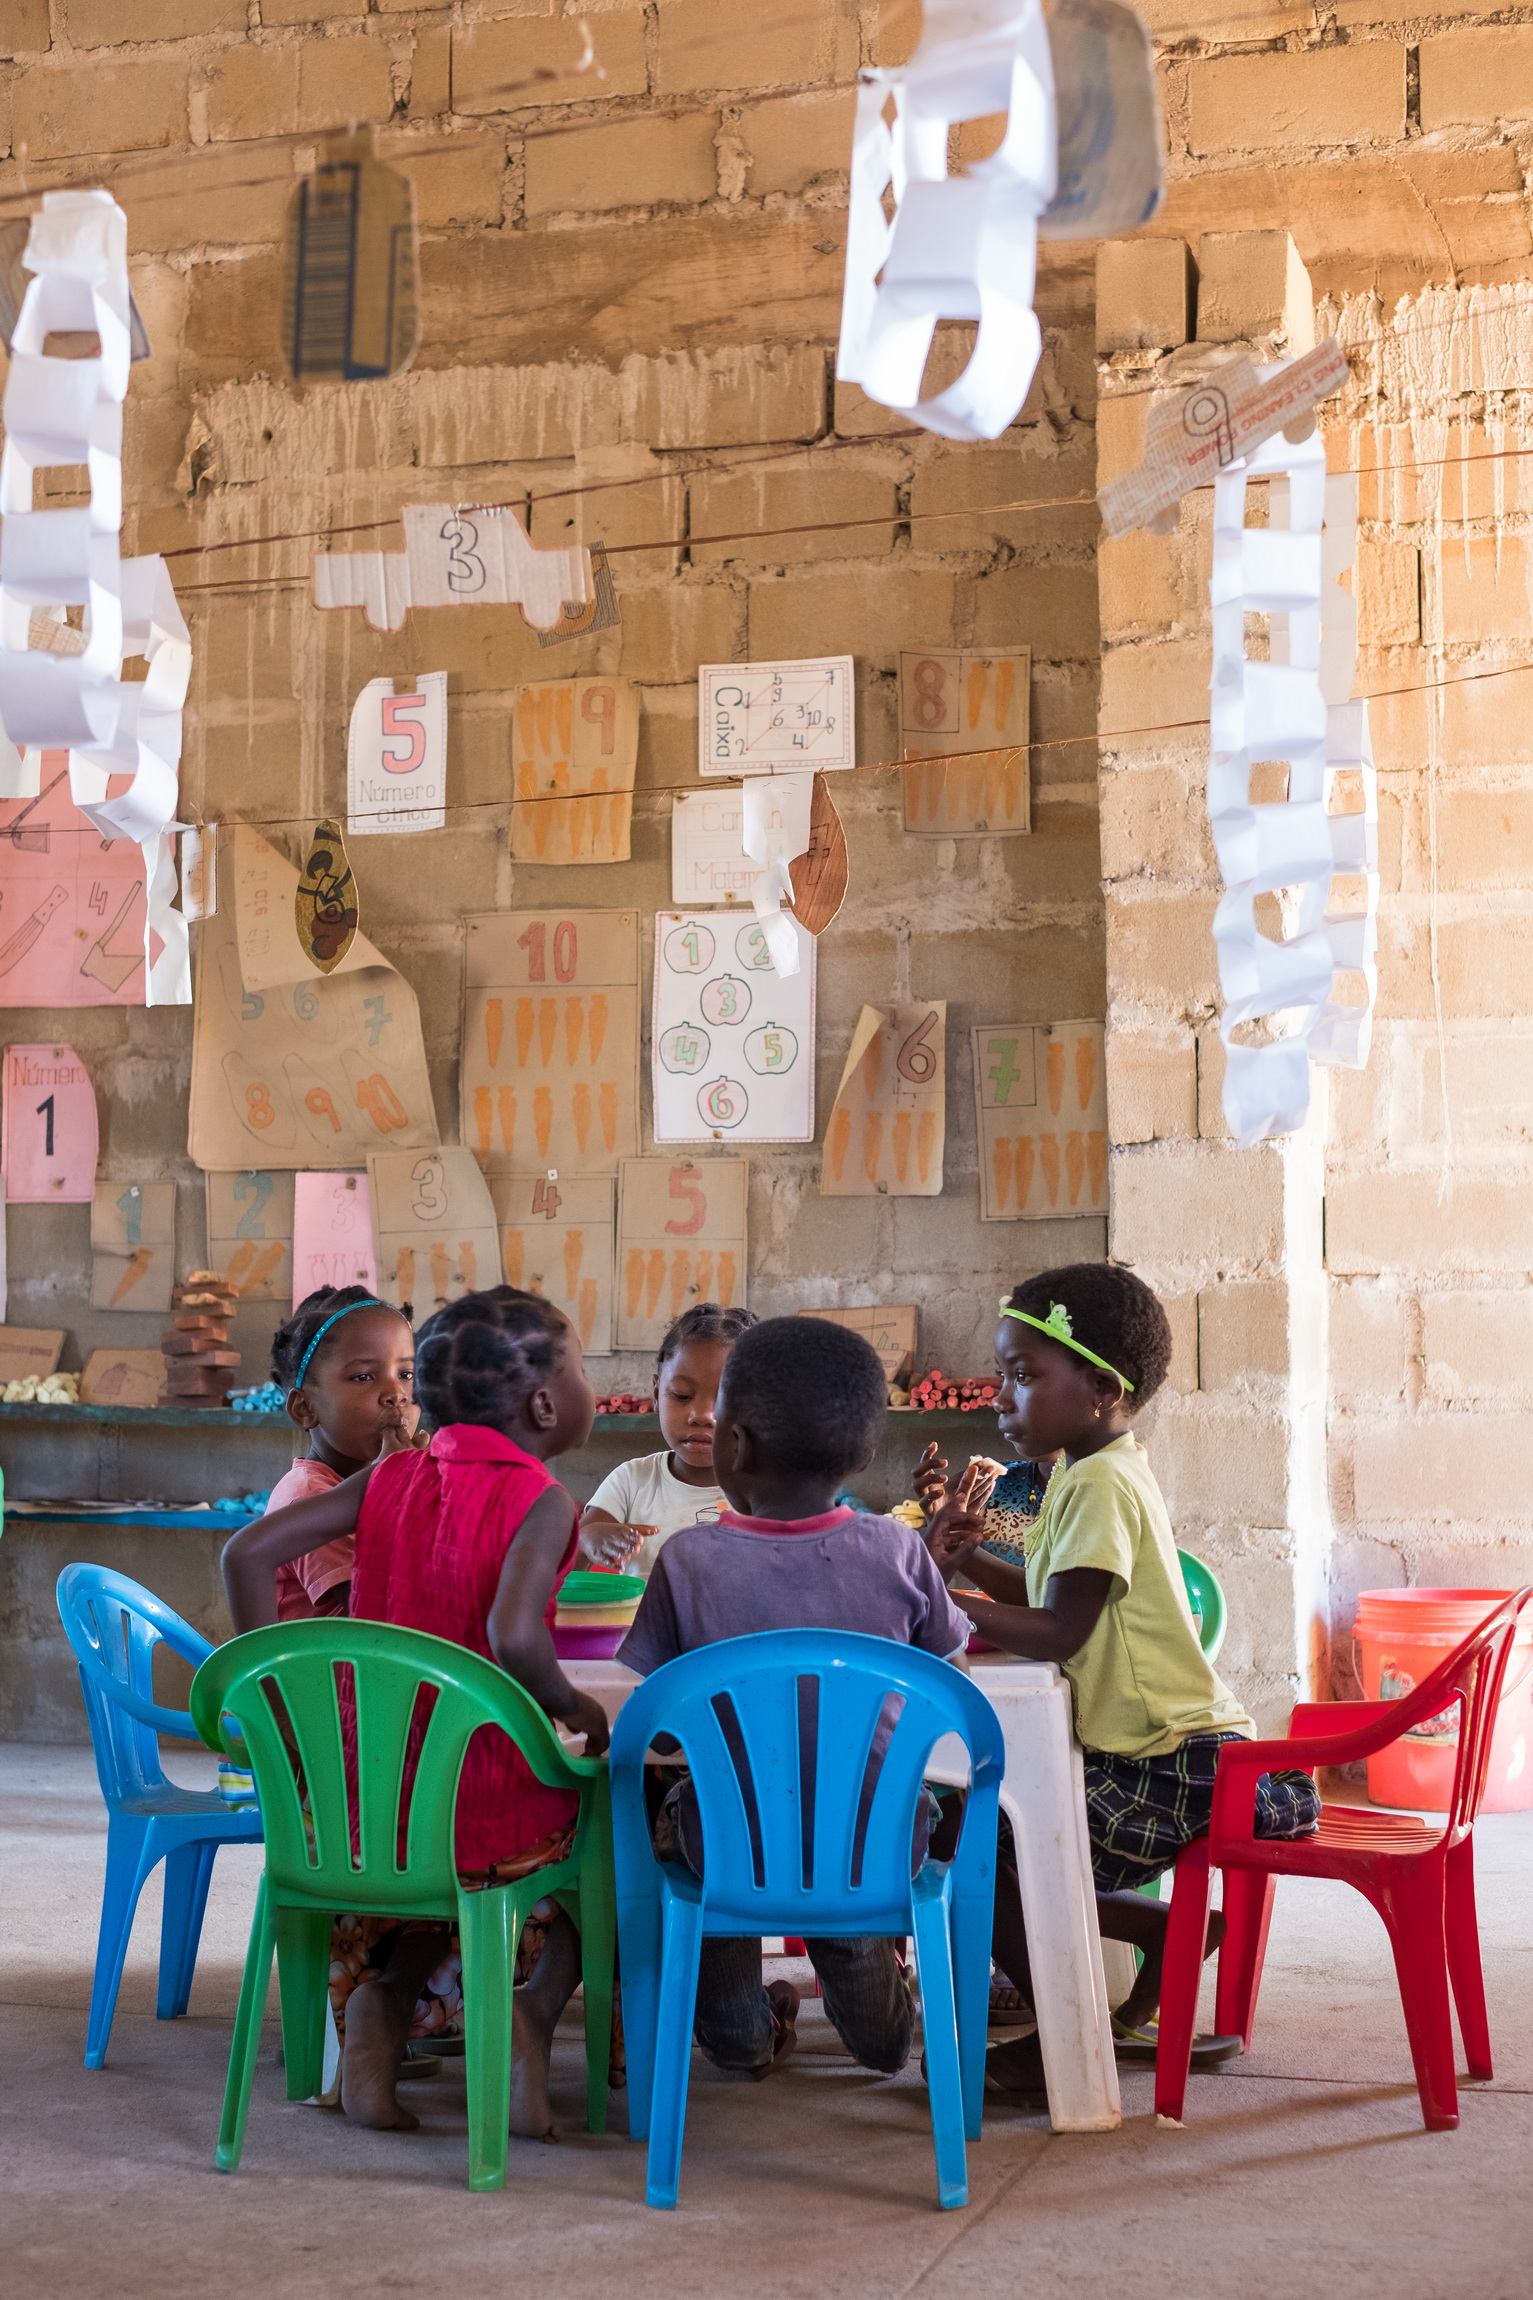 AKDN in pictures: Endeavours in Education (Africa) | Aga